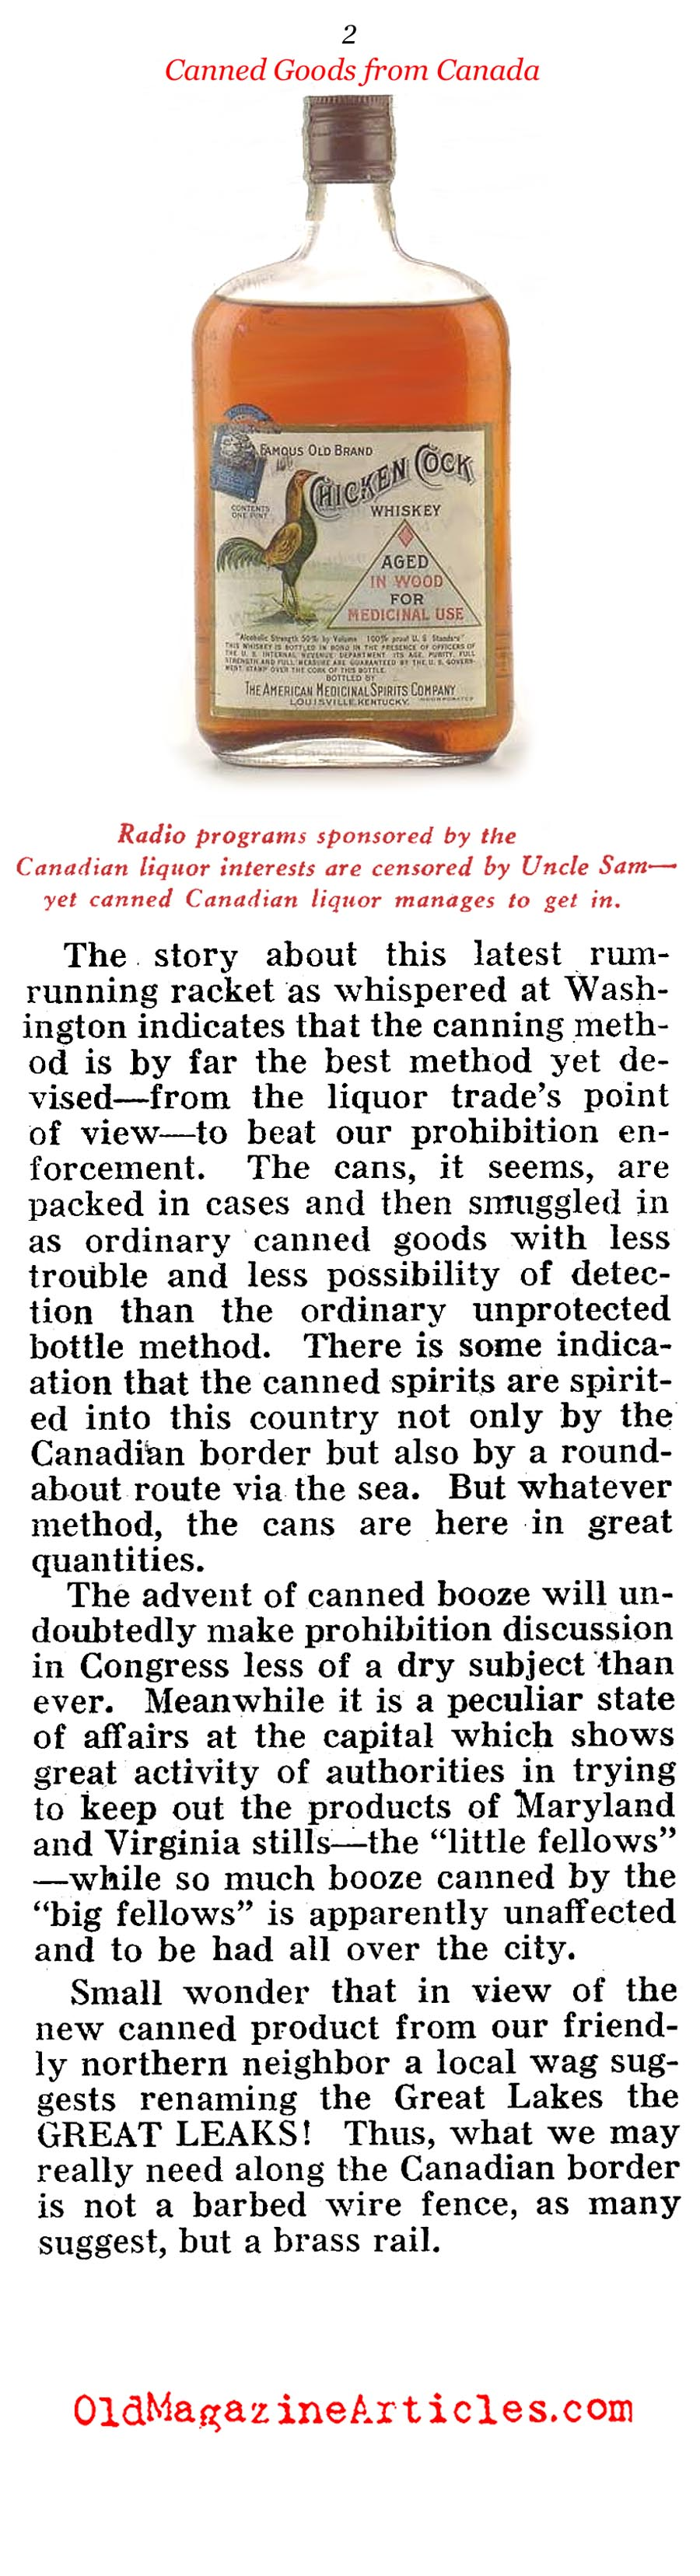 ''Canned Goods'' From Canada (Pathfinder Magazine, 1931)